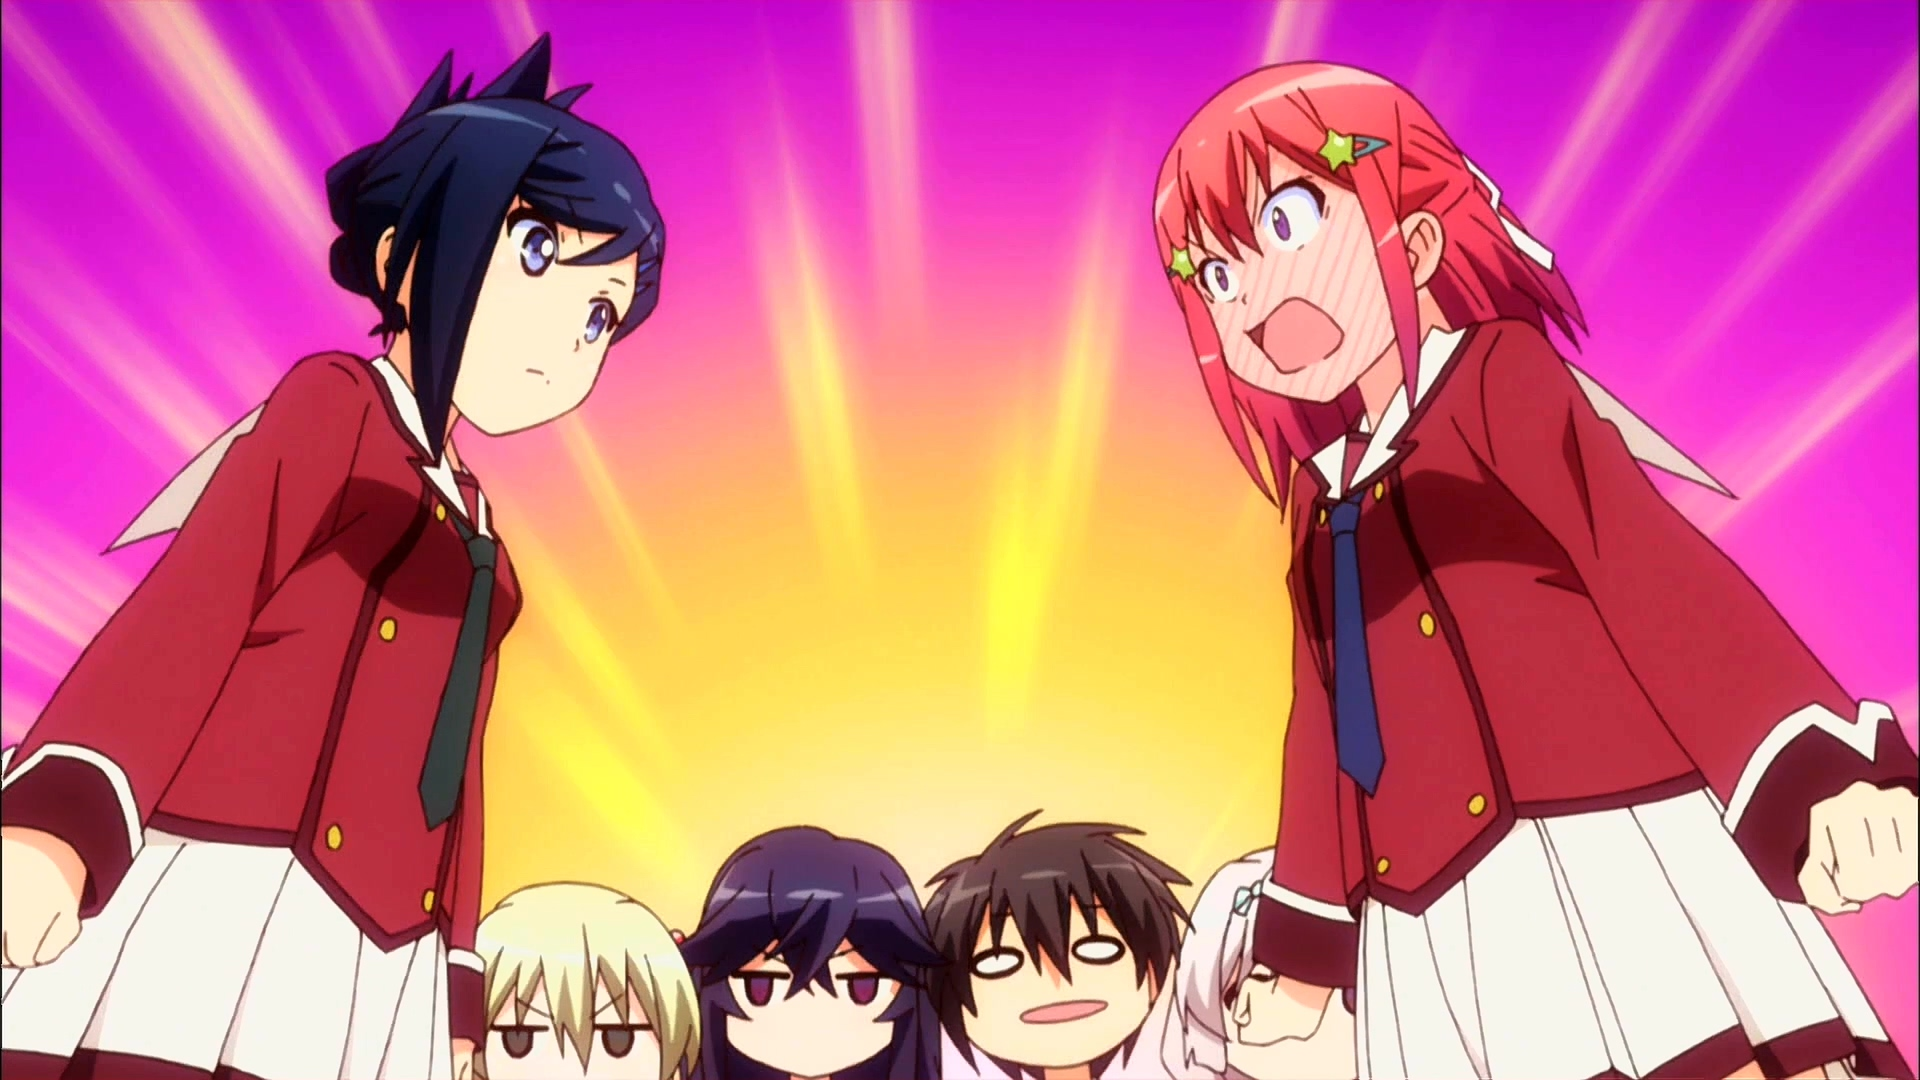 [HorribleSubs] Inou Battle wa Nichijou-kei no Naka de - 02 [1080p].mkv_20141019_004718.031.jpg